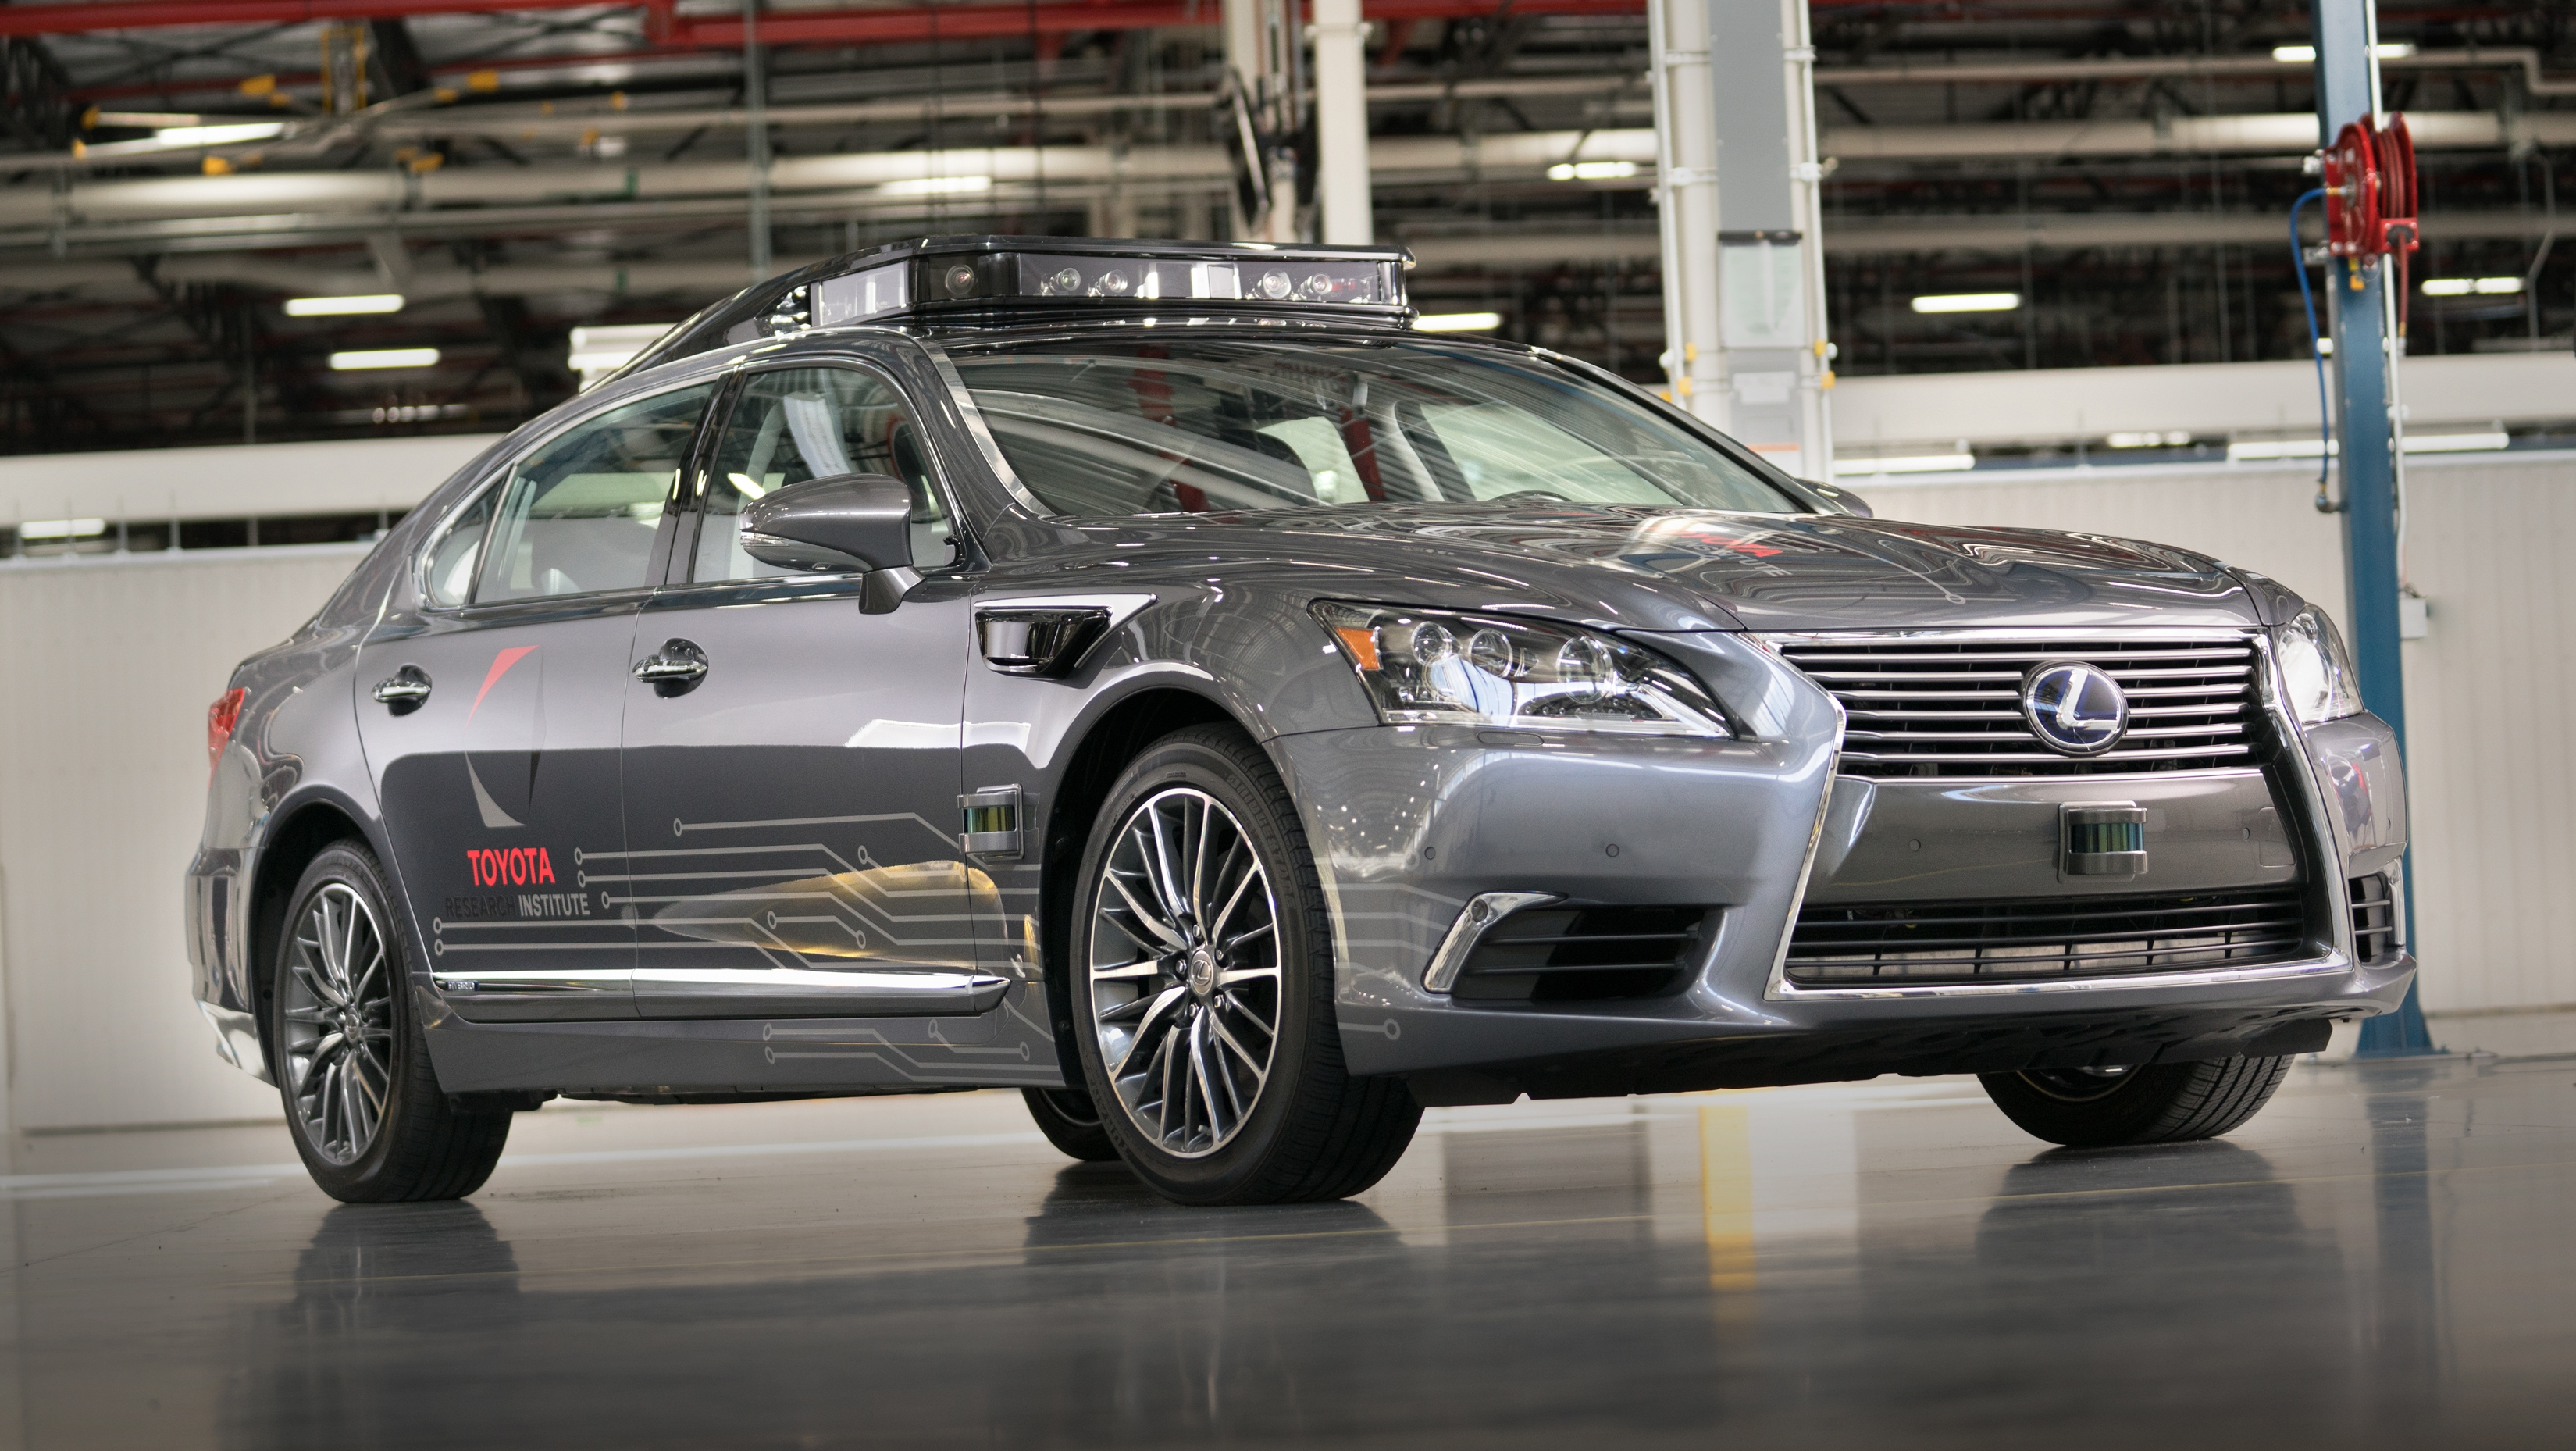 Toyota To Show Up At CES 2018 With A Next-Gen Lexus-Based ...